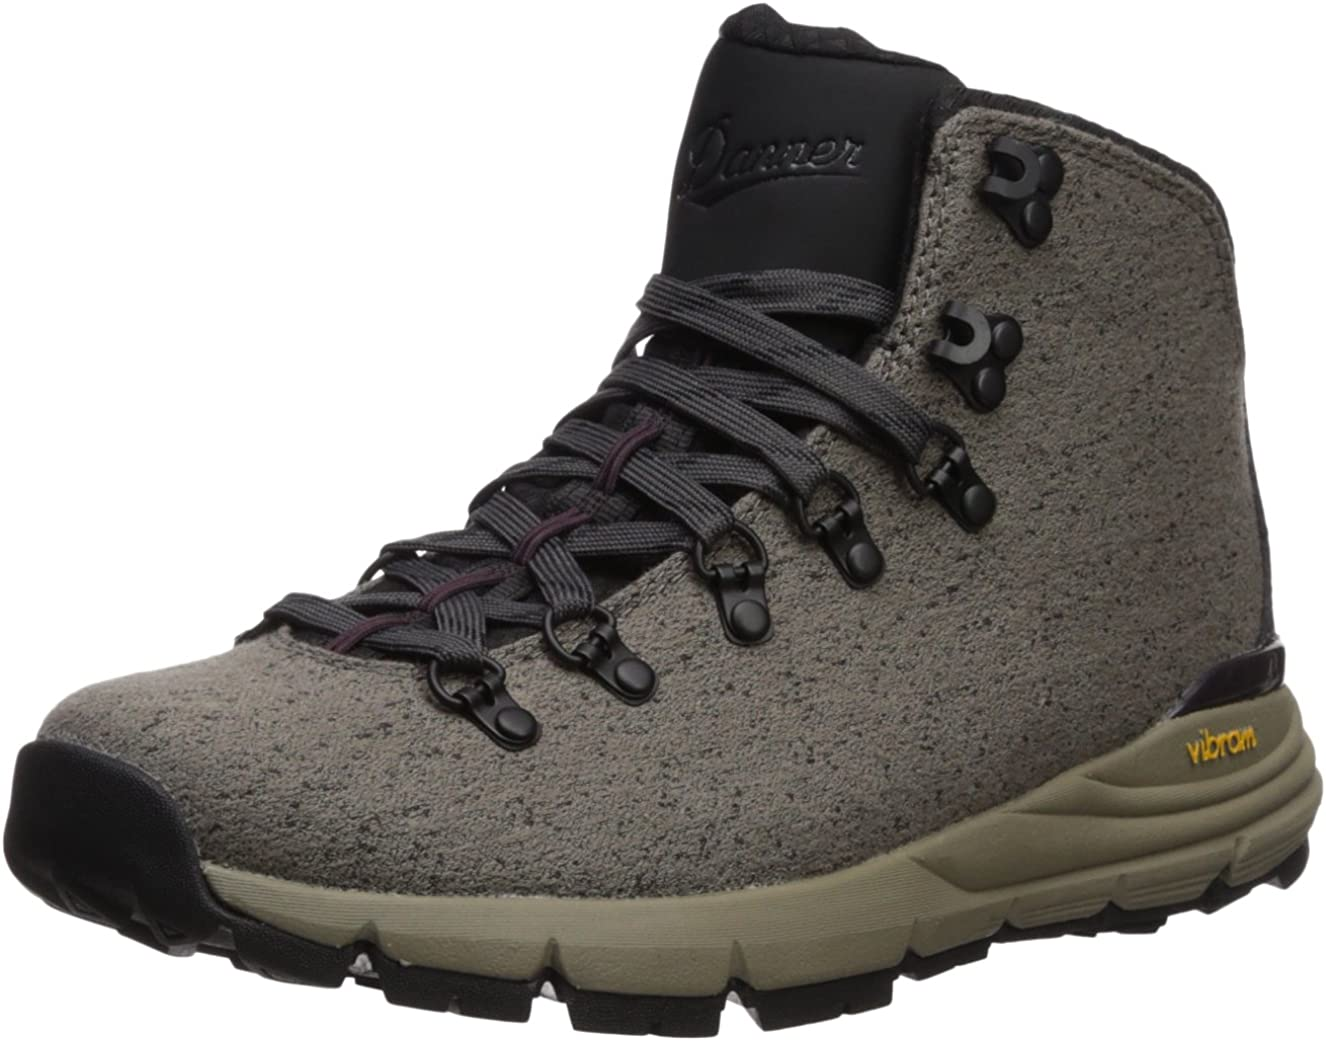 Danner Women s Mountain 600 EnduroWeave 4.5 -W s Hiking Boot